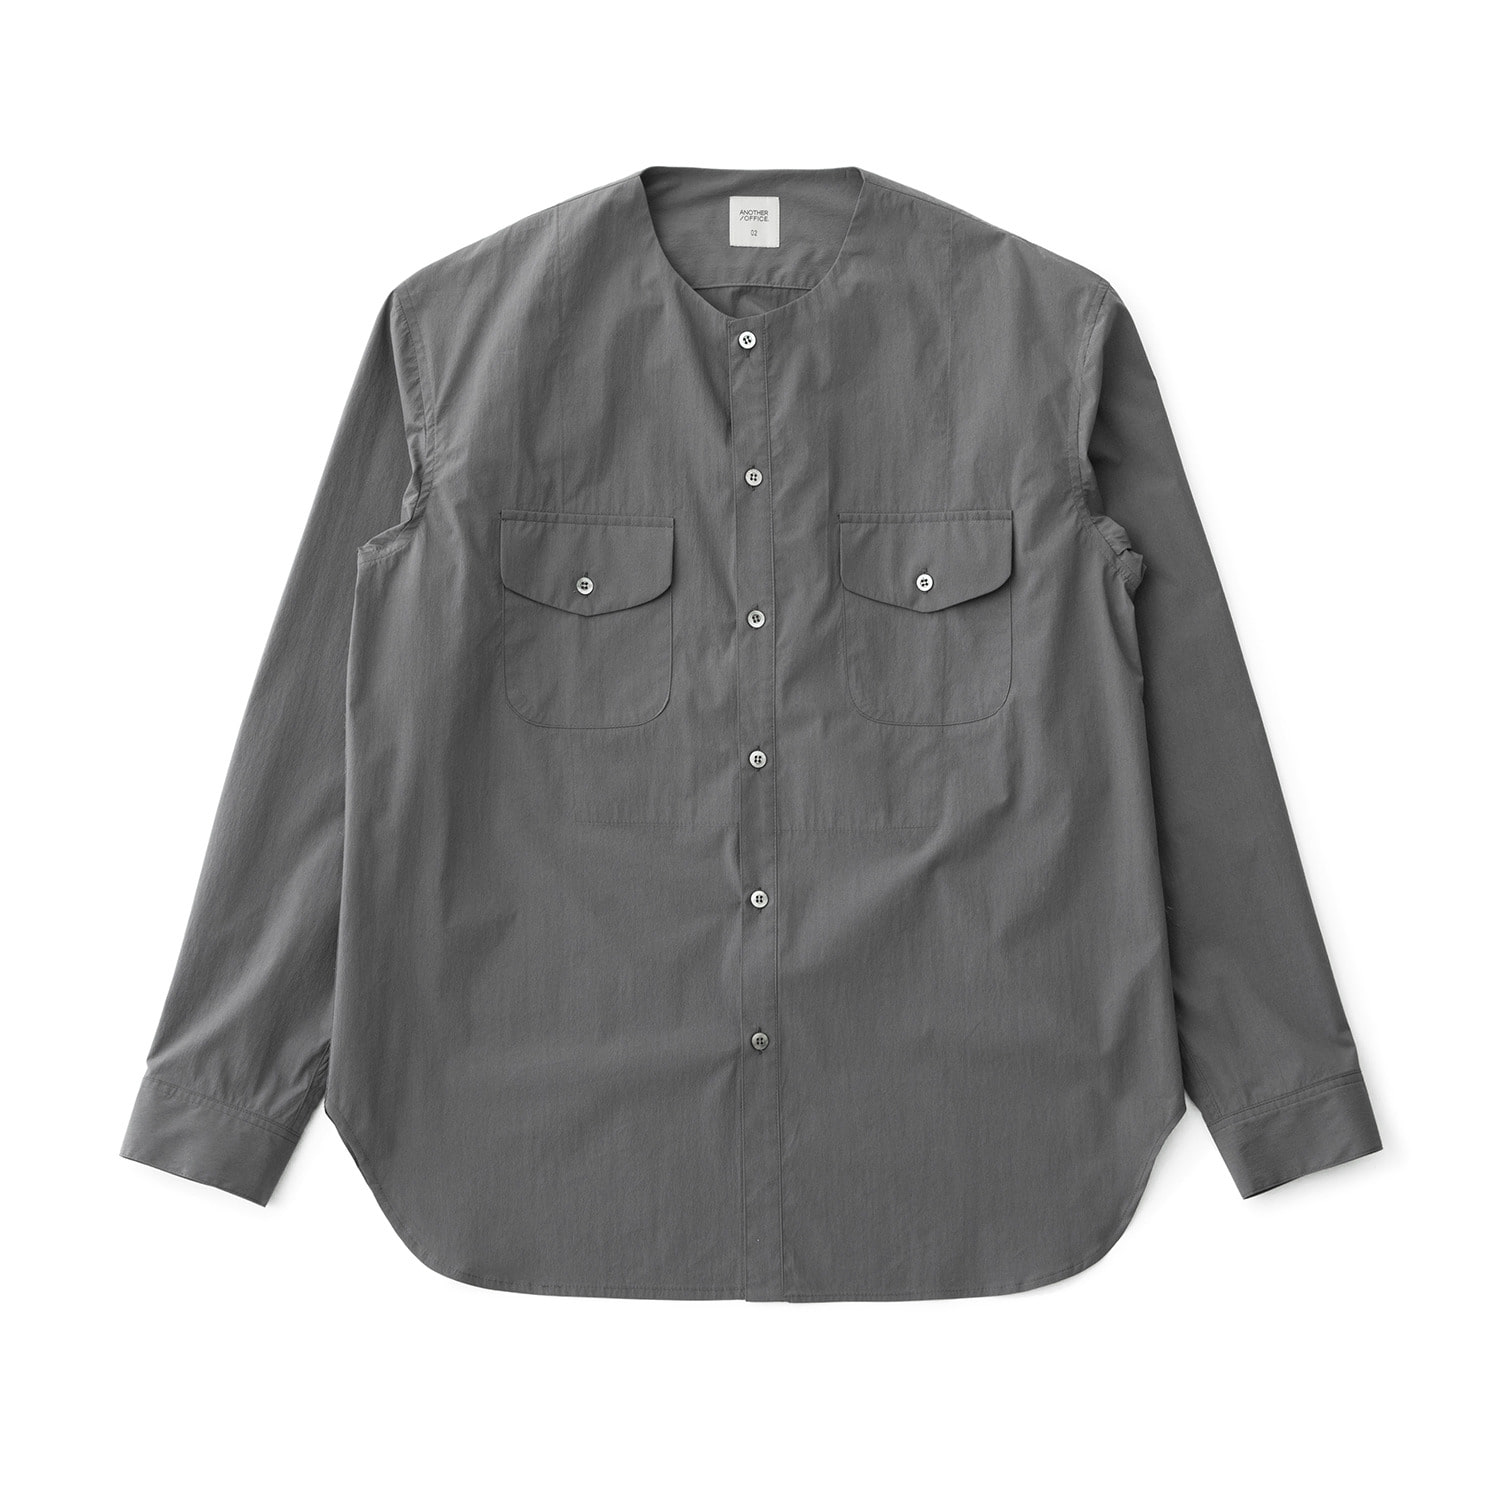 A/O 21SS Layer Round-neck Shirt (Slate Gray)